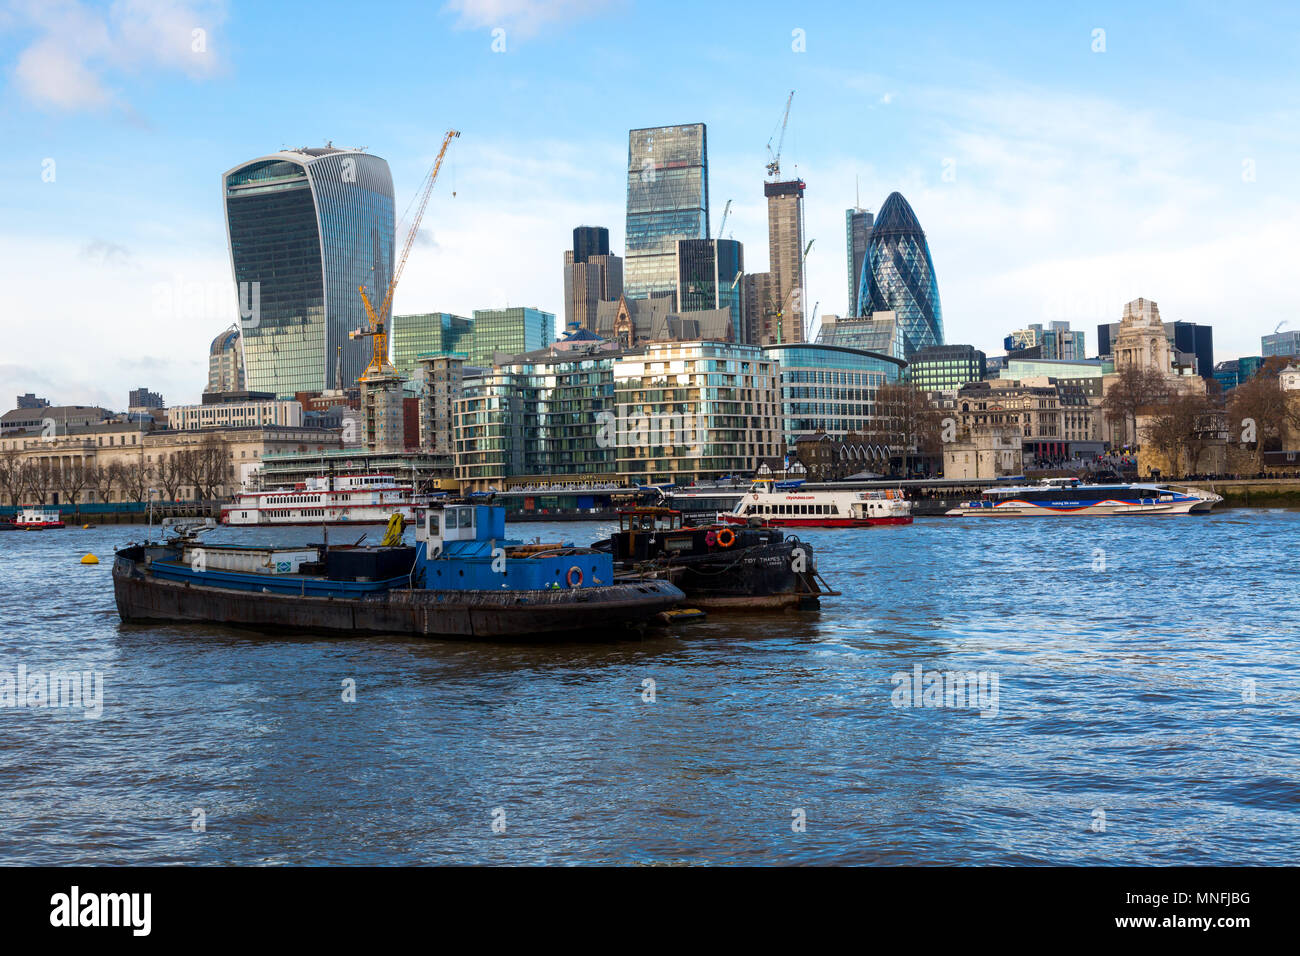 City of London, Financial Services Companies headquarters, The Leadenhall Building, The Gherkin view from south side of River Thames, London, UK, 11 D - Stock Image